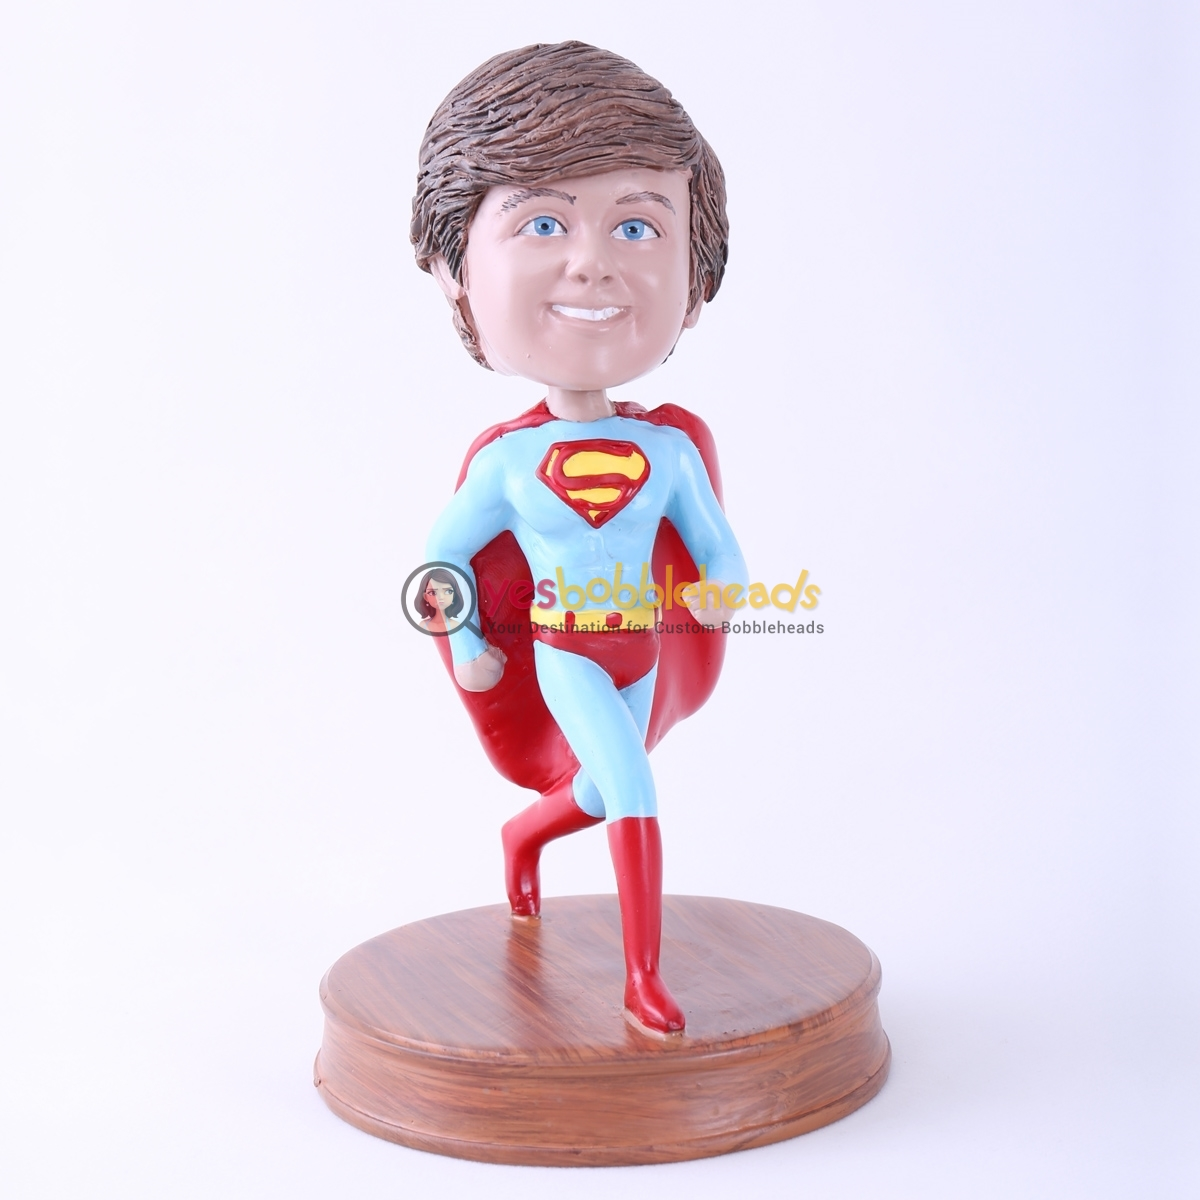 Picture of Custom Bobblehead Doll: Running Boy in Red Cape